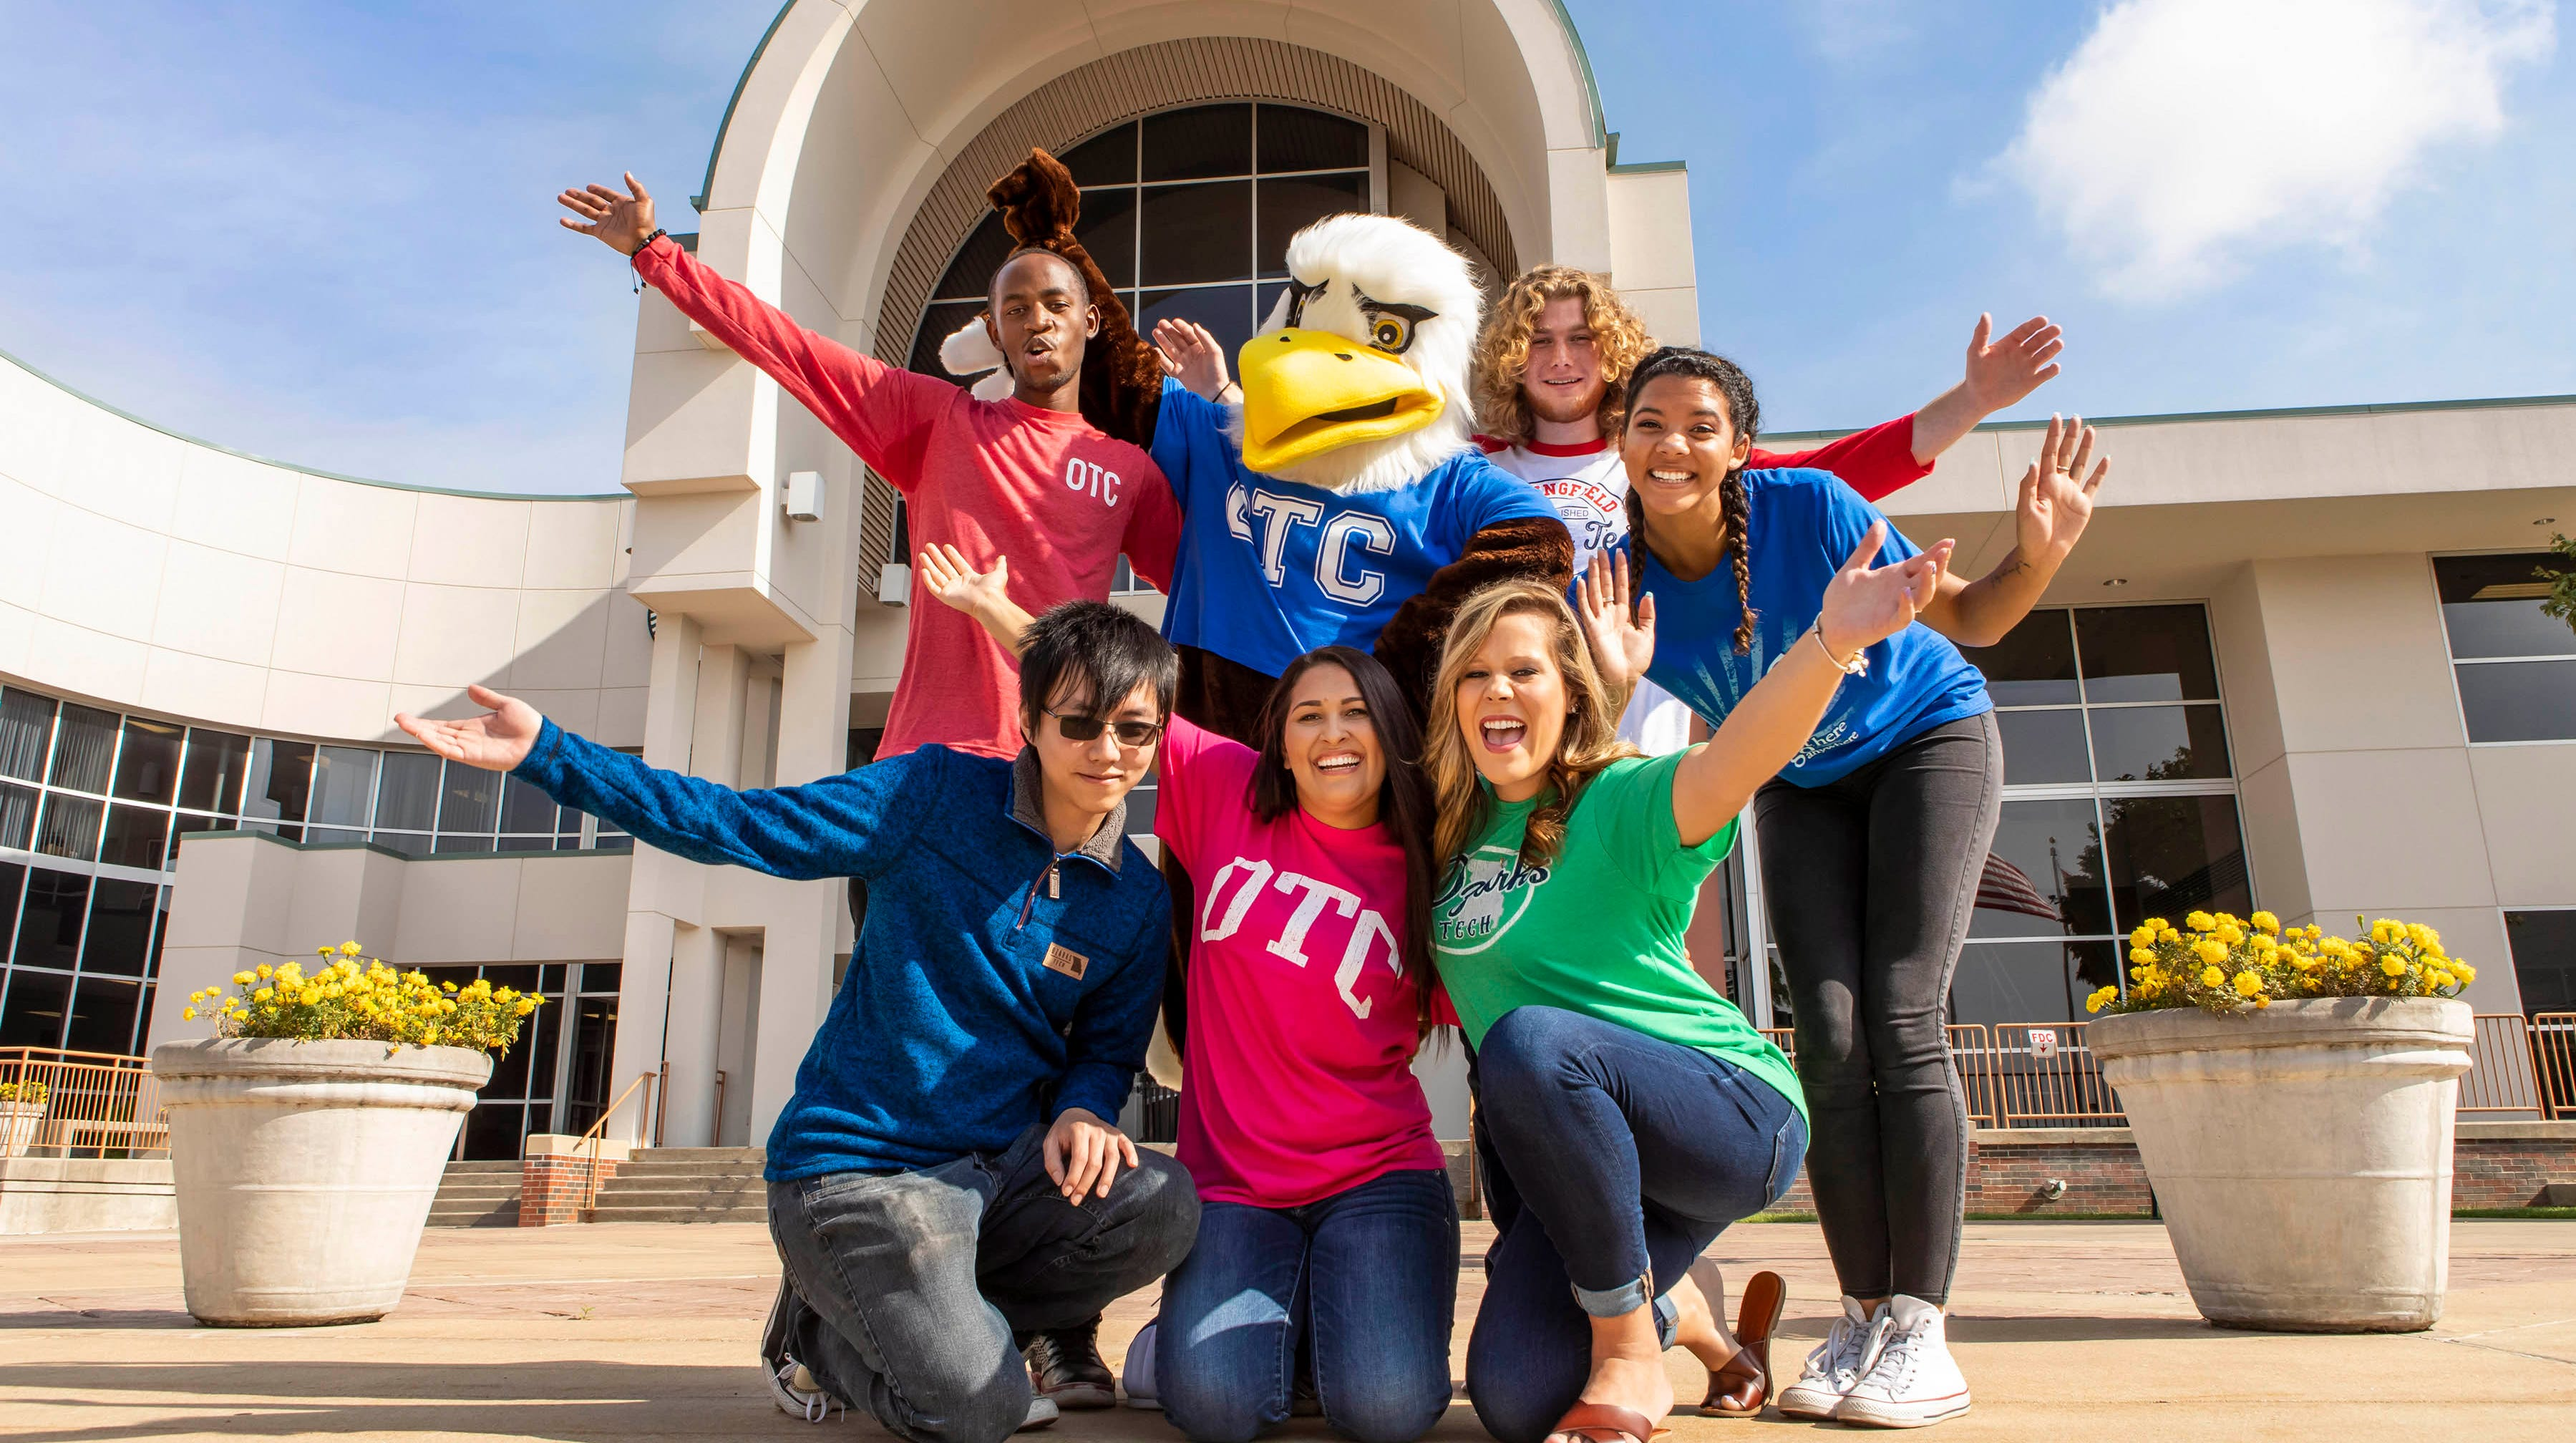 What's the one thing OTC needed? A real, life mascot. So meet Ozzy the Eagle